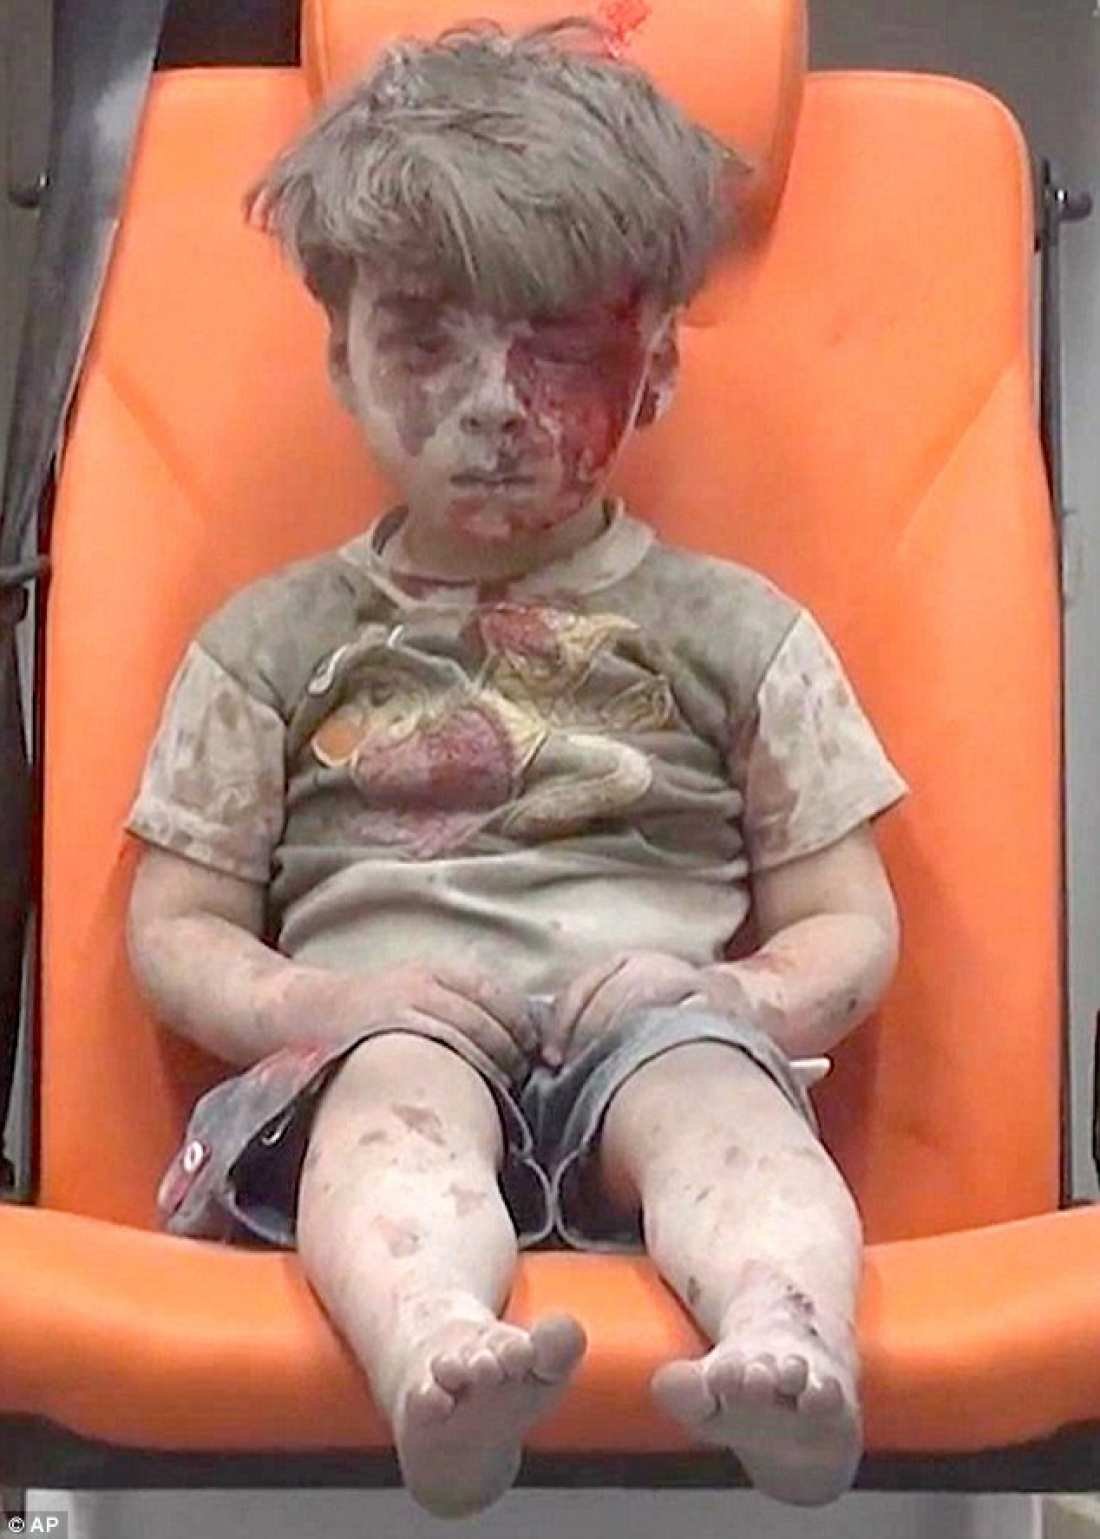 Sobering photo of Syrian boy rescued from a bombed apartment building